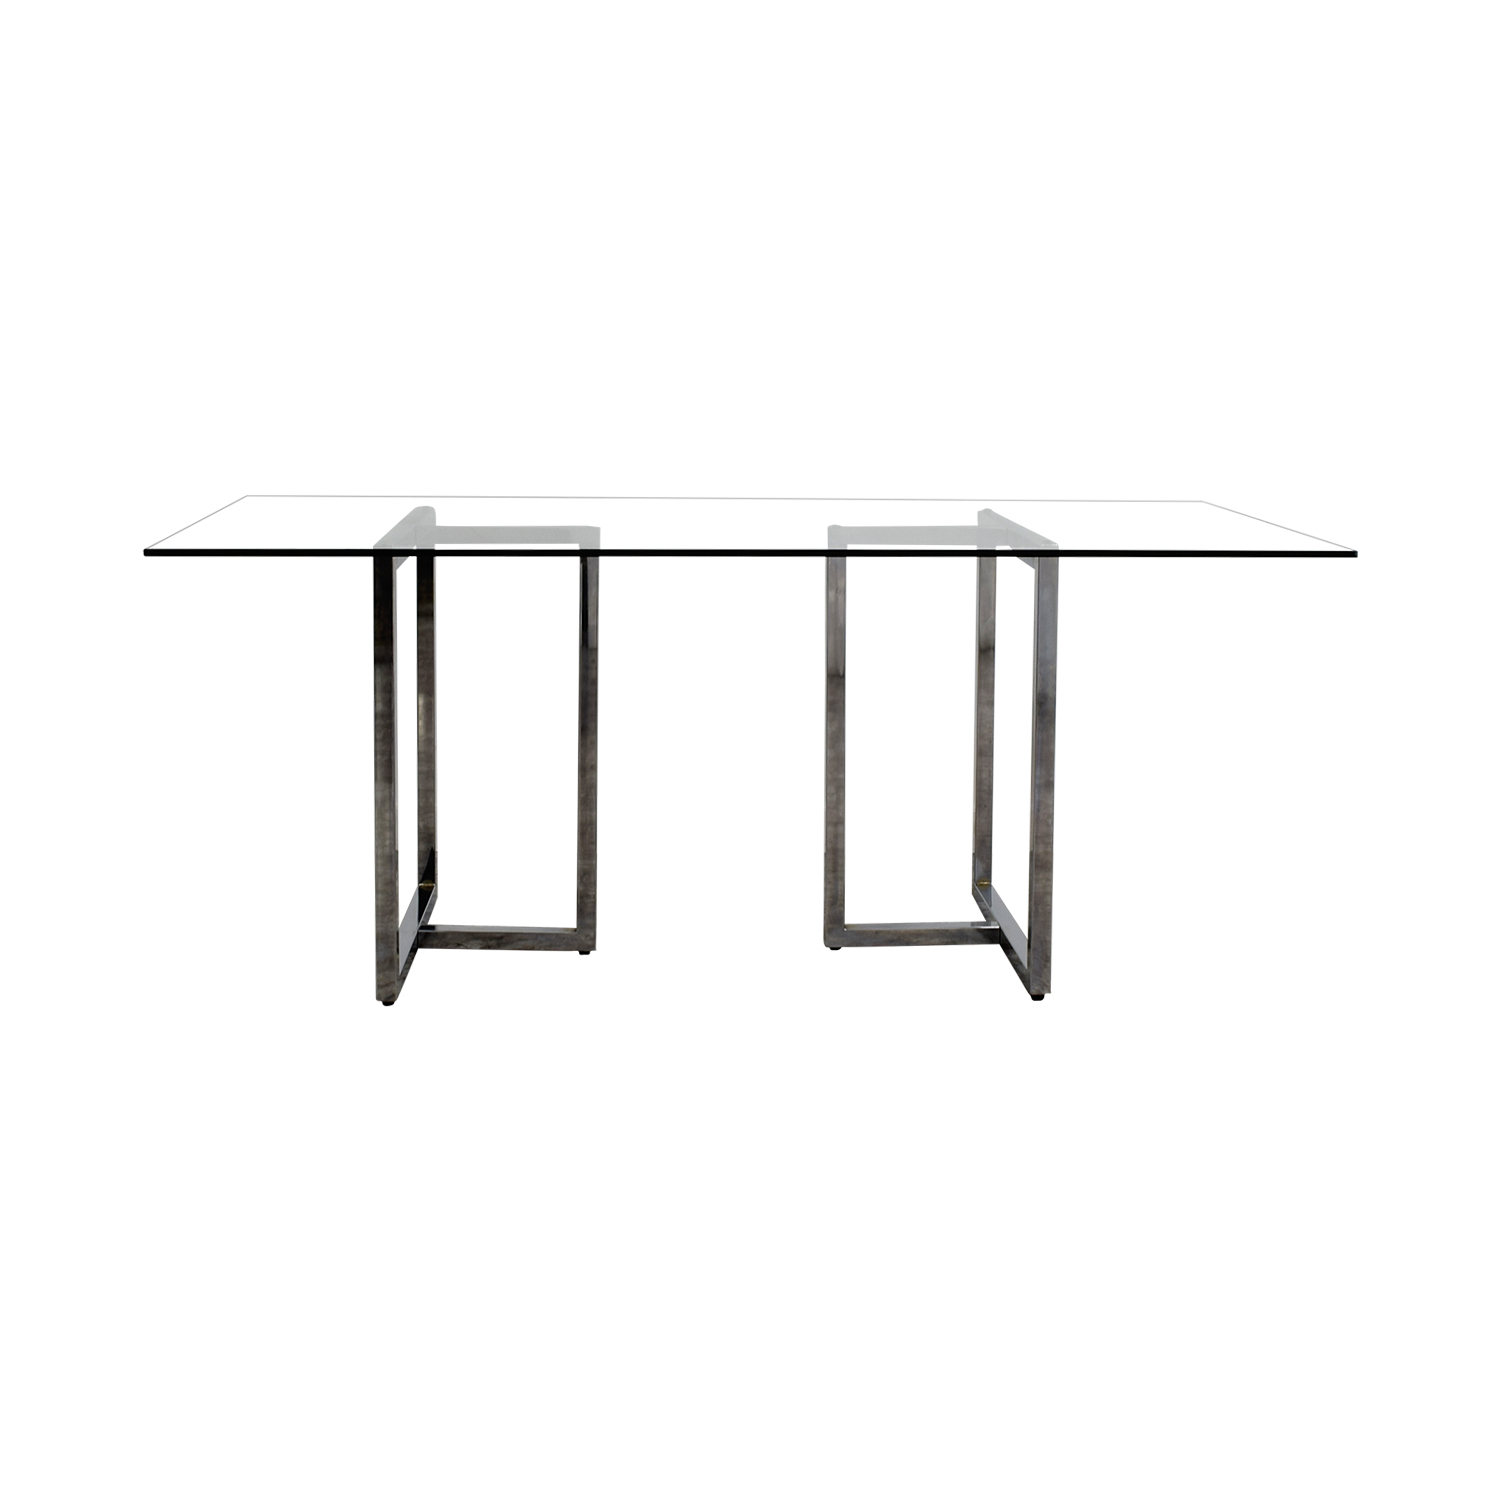 CB2 CB2 Silverado Rectangular Glass and Chrome Dining Table Dinner Tables